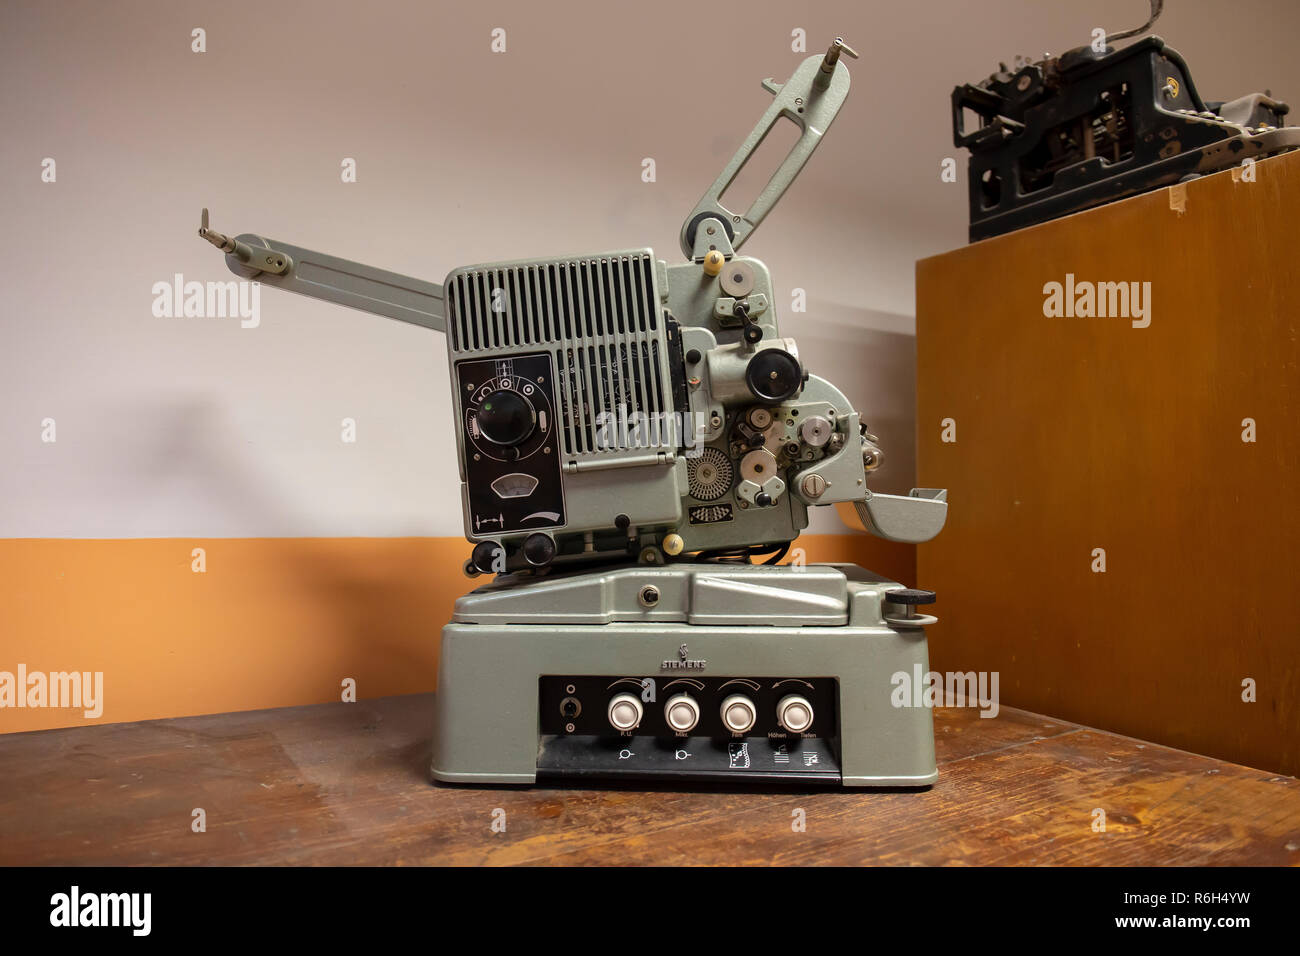 A vintage 8mm film projector without film reel Stock Photo